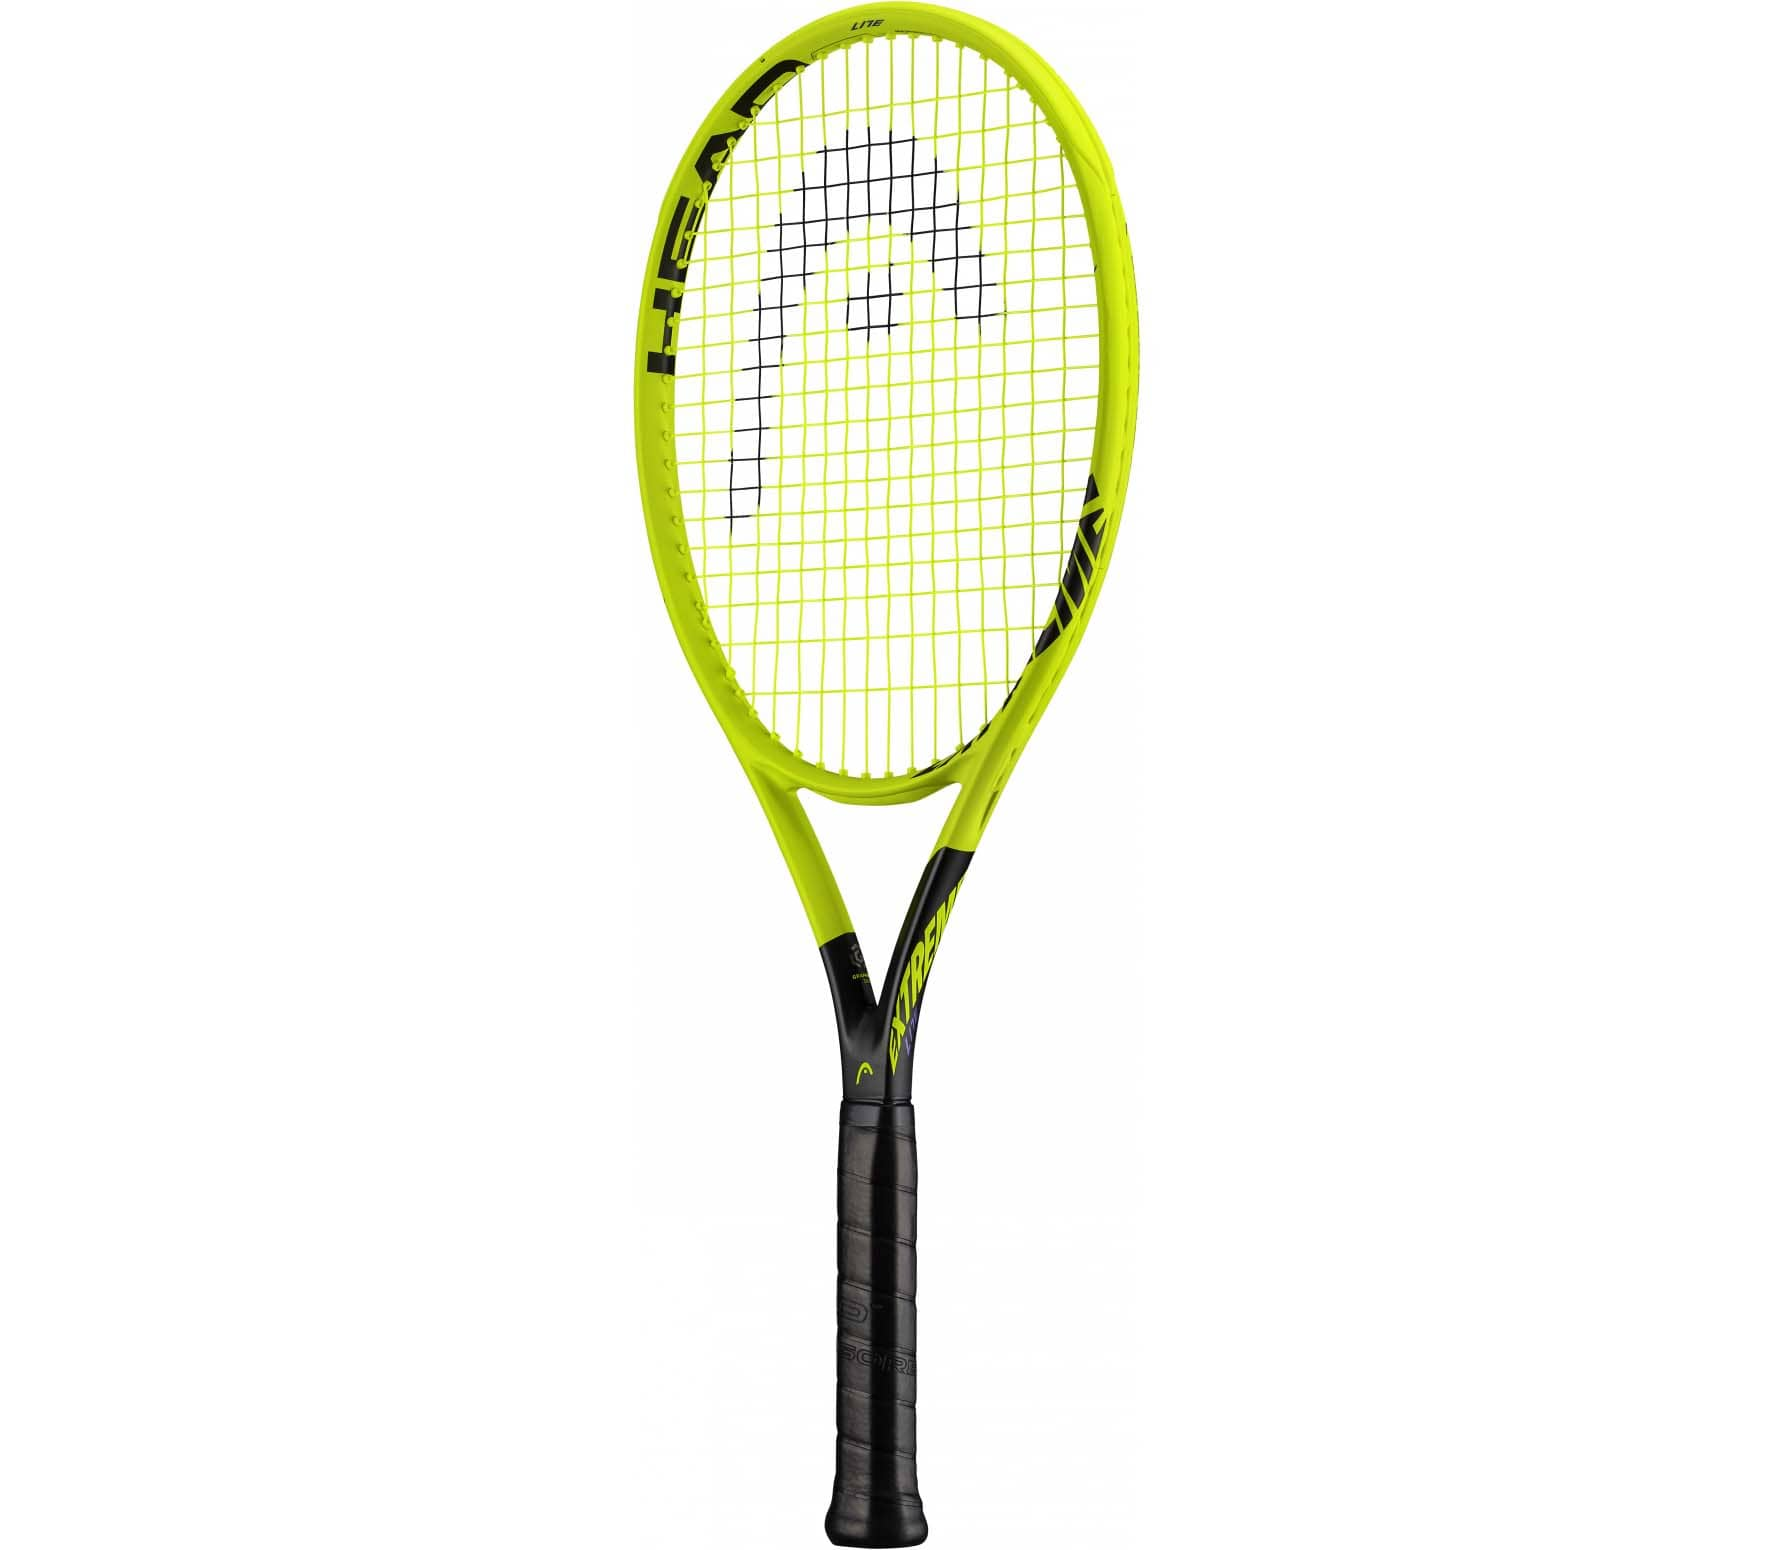 Head - Graphene 360 Extreme LITE tennis racket (green)